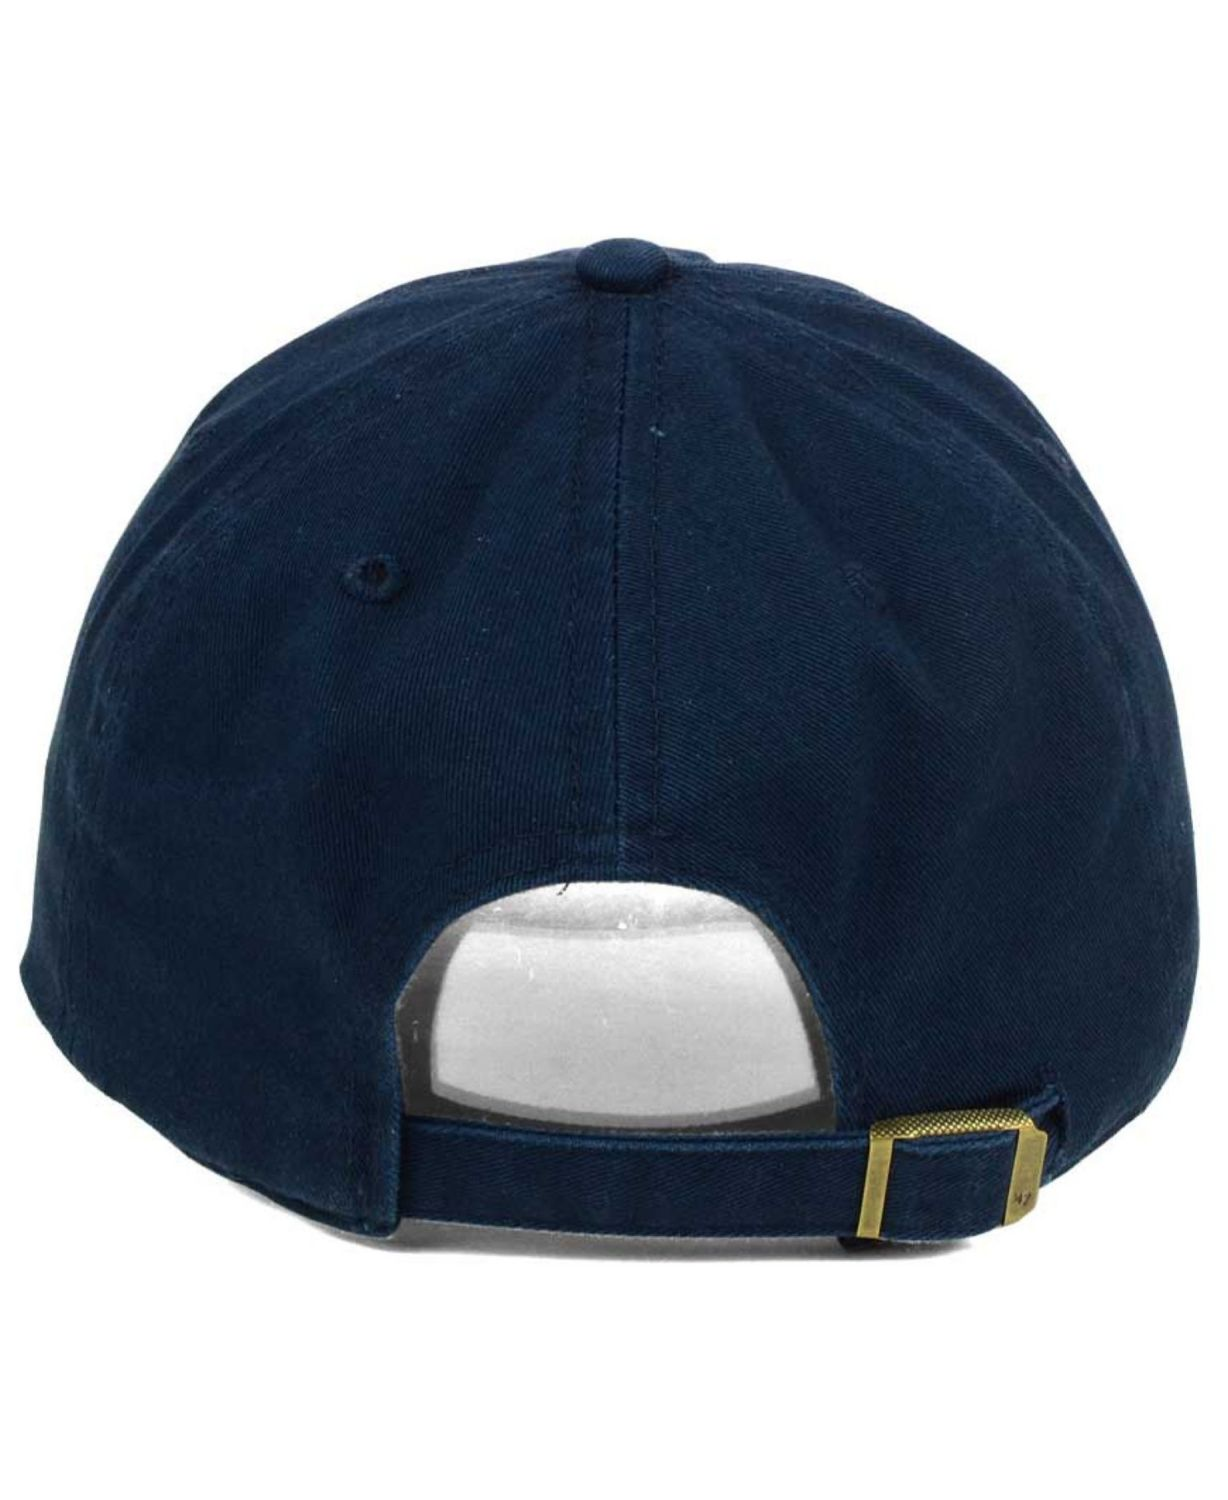 '47 Brand San Diego Padres Cooperstown Clean Up Cap & Reviews - Sports Fan Shop By Lids - Men - Macy's